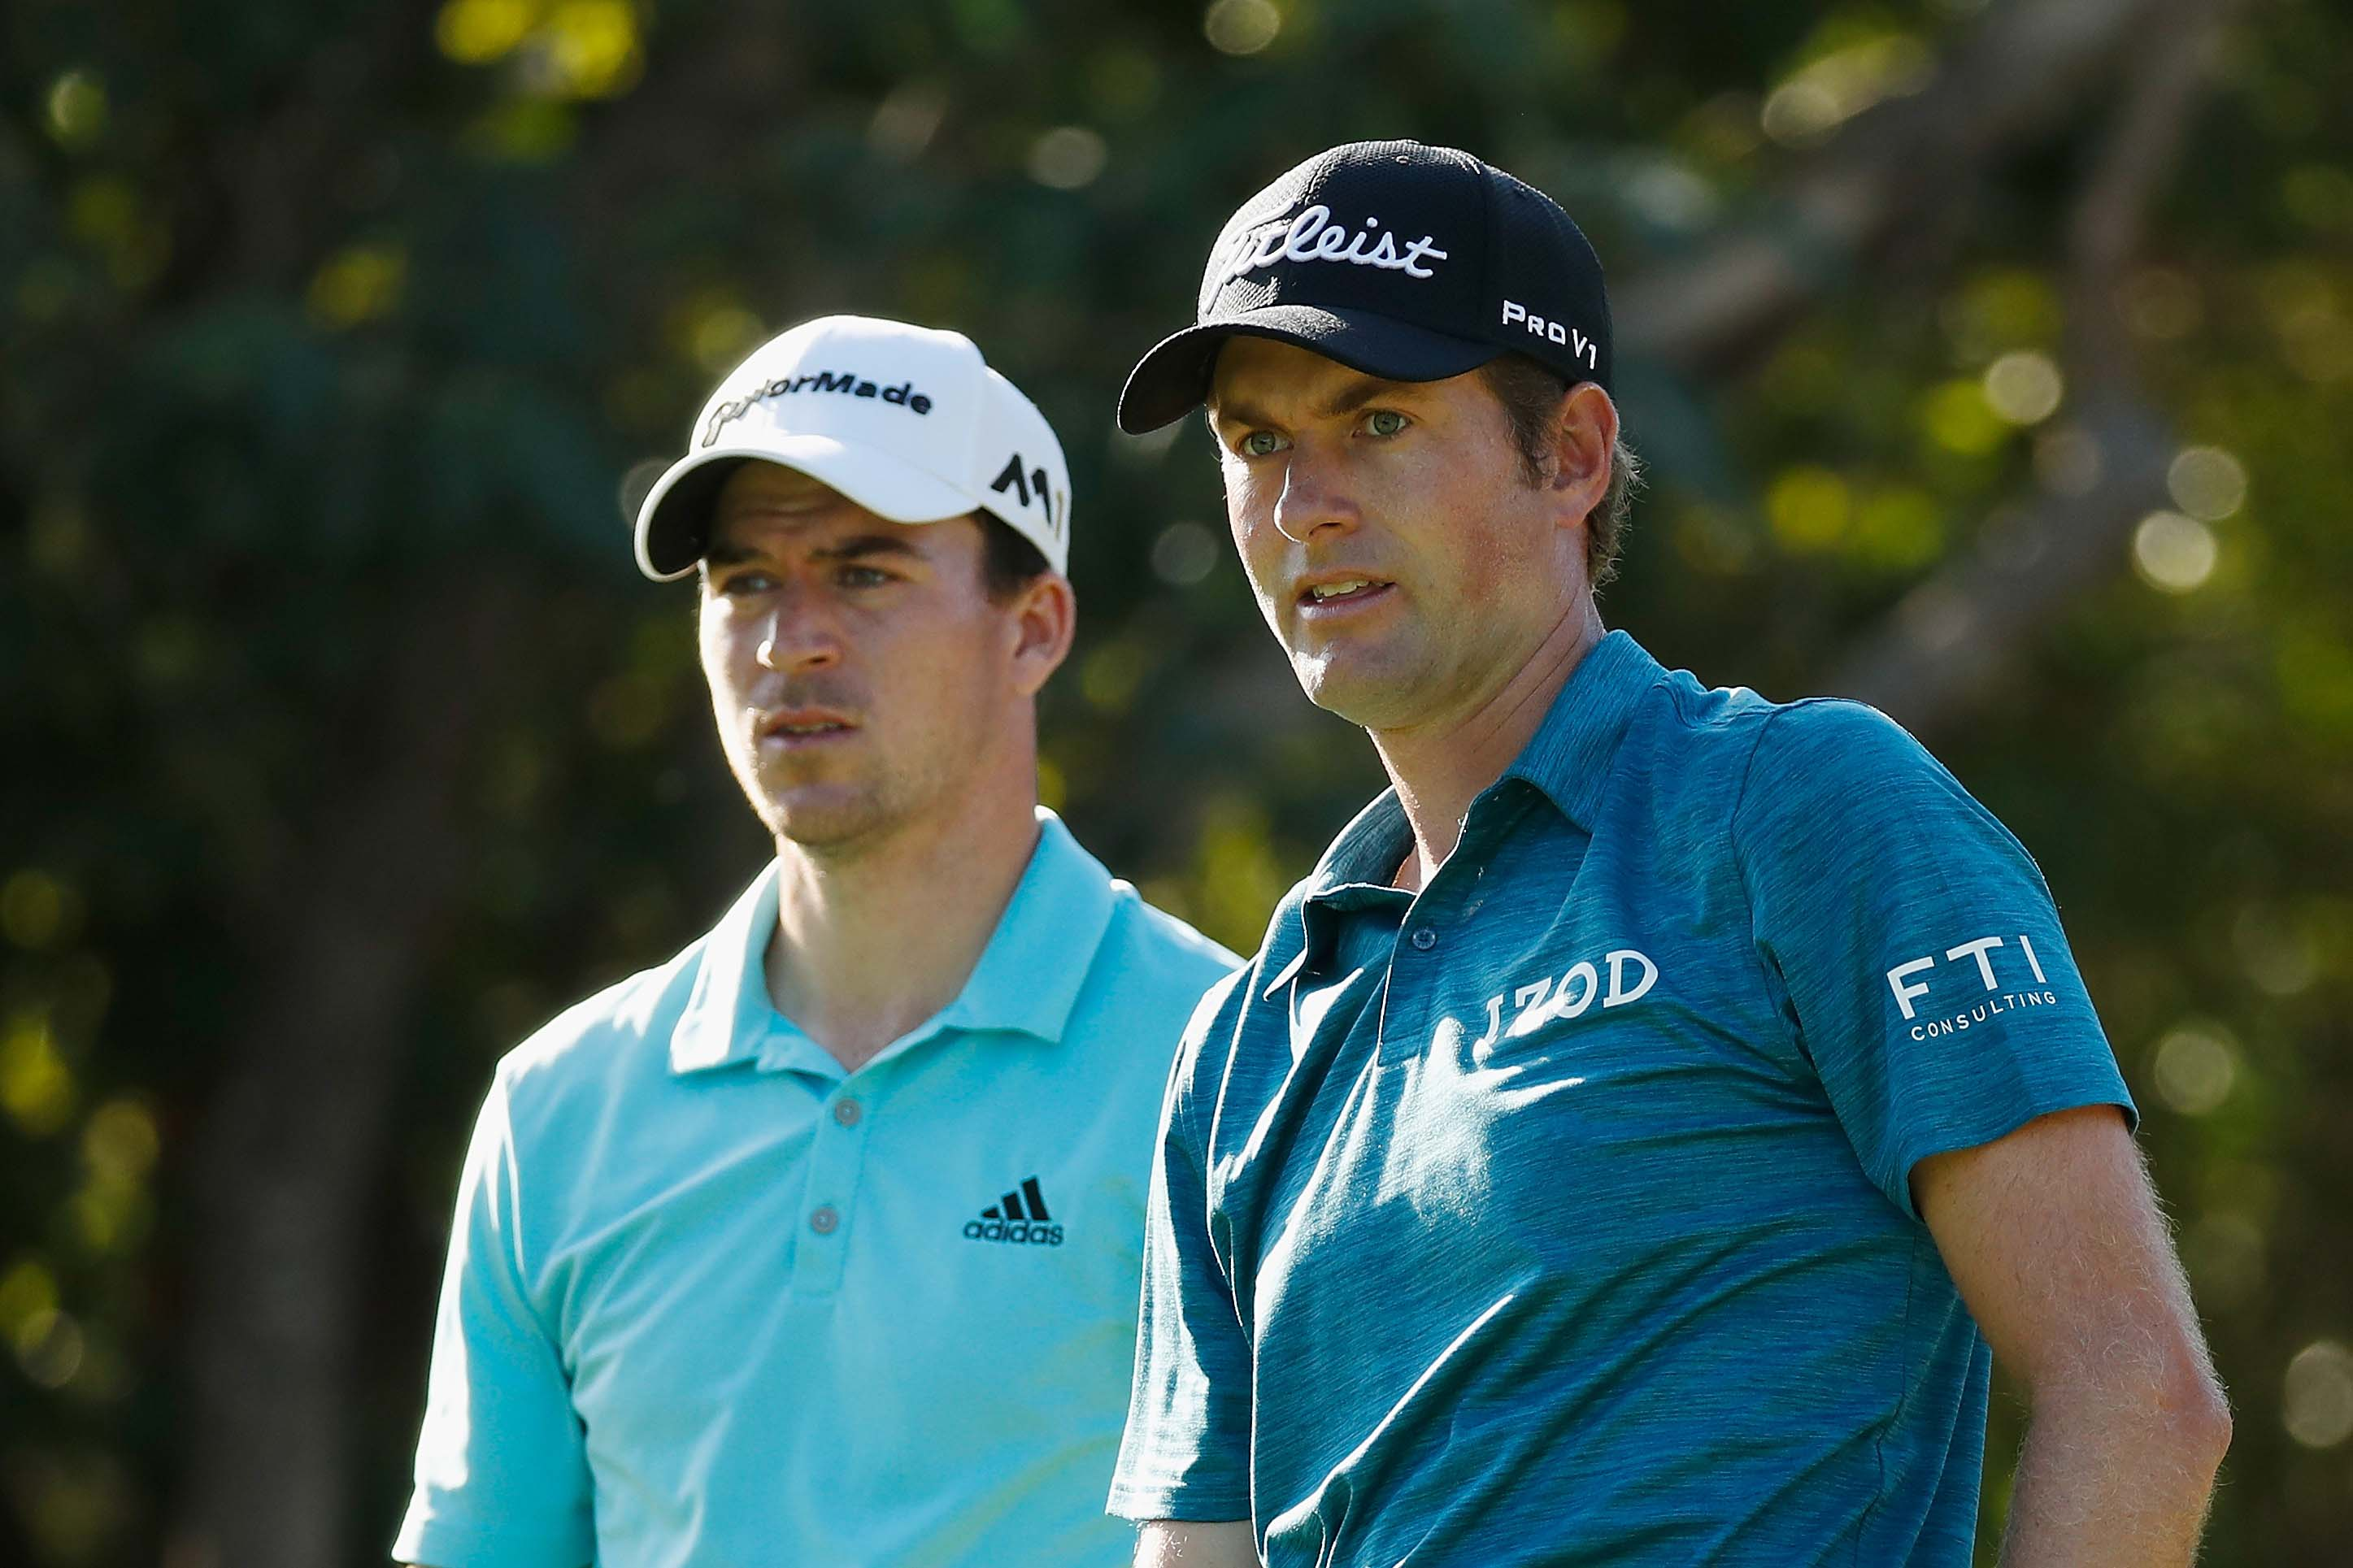 Nick Taylor and Webb Simpson